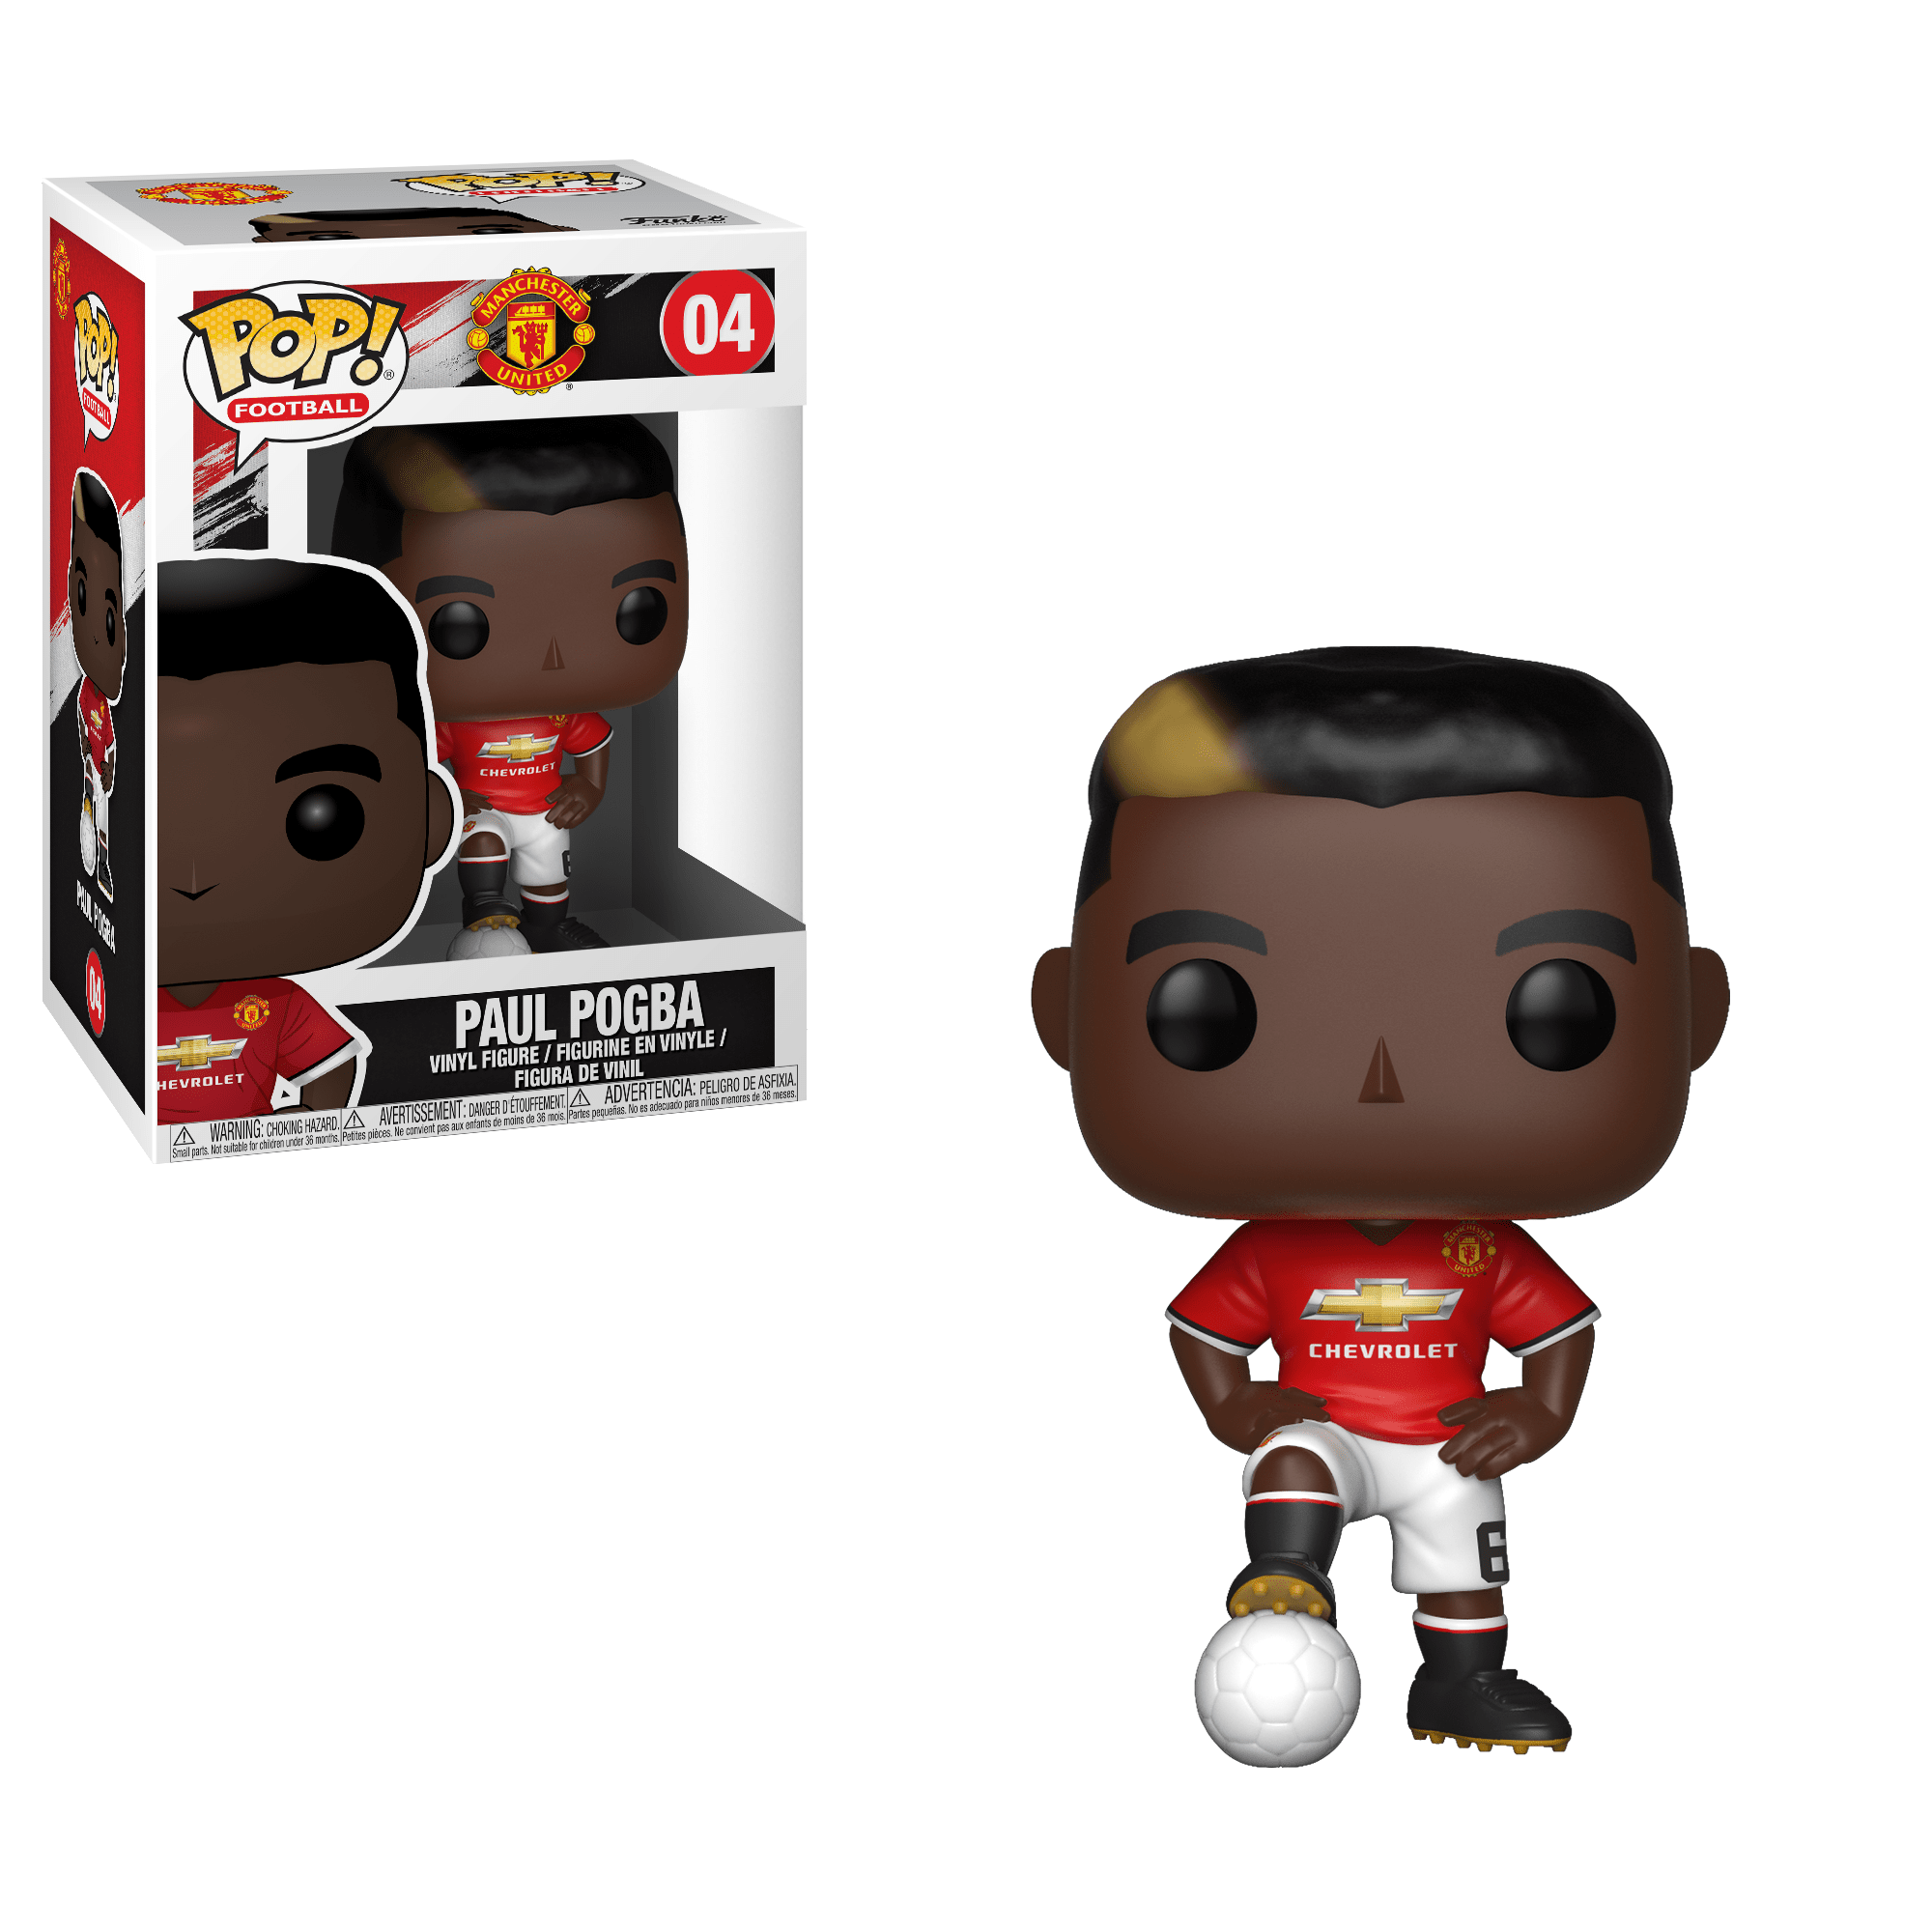 Funko Pop! Sports - Football: Manchester United #04 - Paul Pogba *VAULTED* - Simply Toys